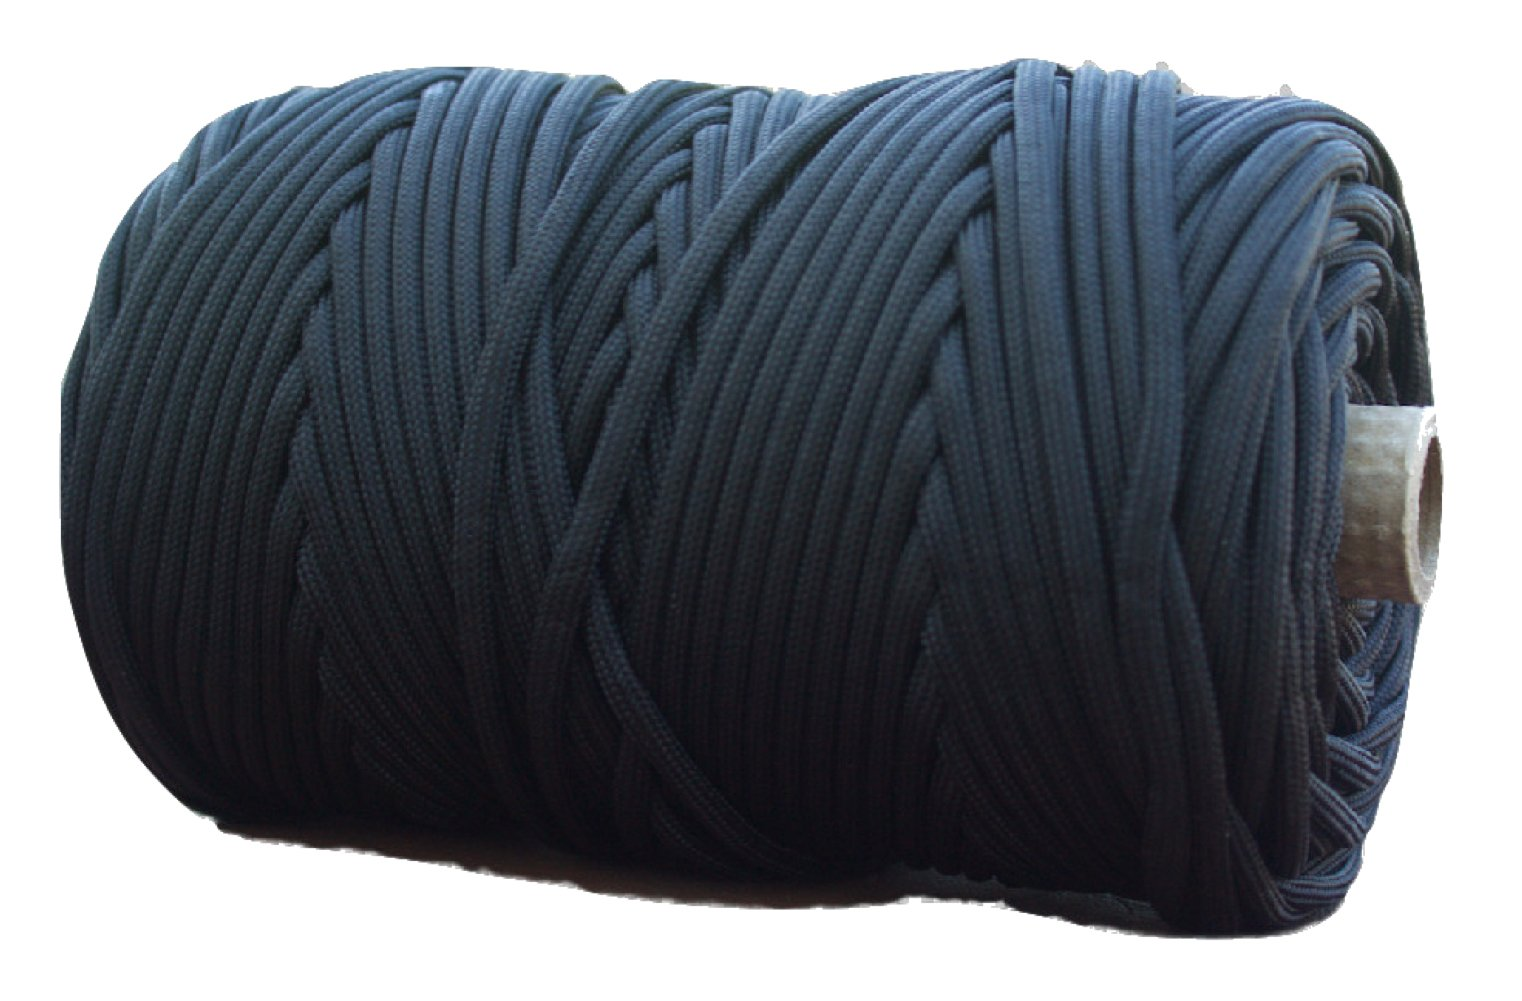 X-CORDS Paracord 850 Lb Stronger Than 550 and 750 Made by US Government Certified Contractor(300' Black Tube) by X-CORDS